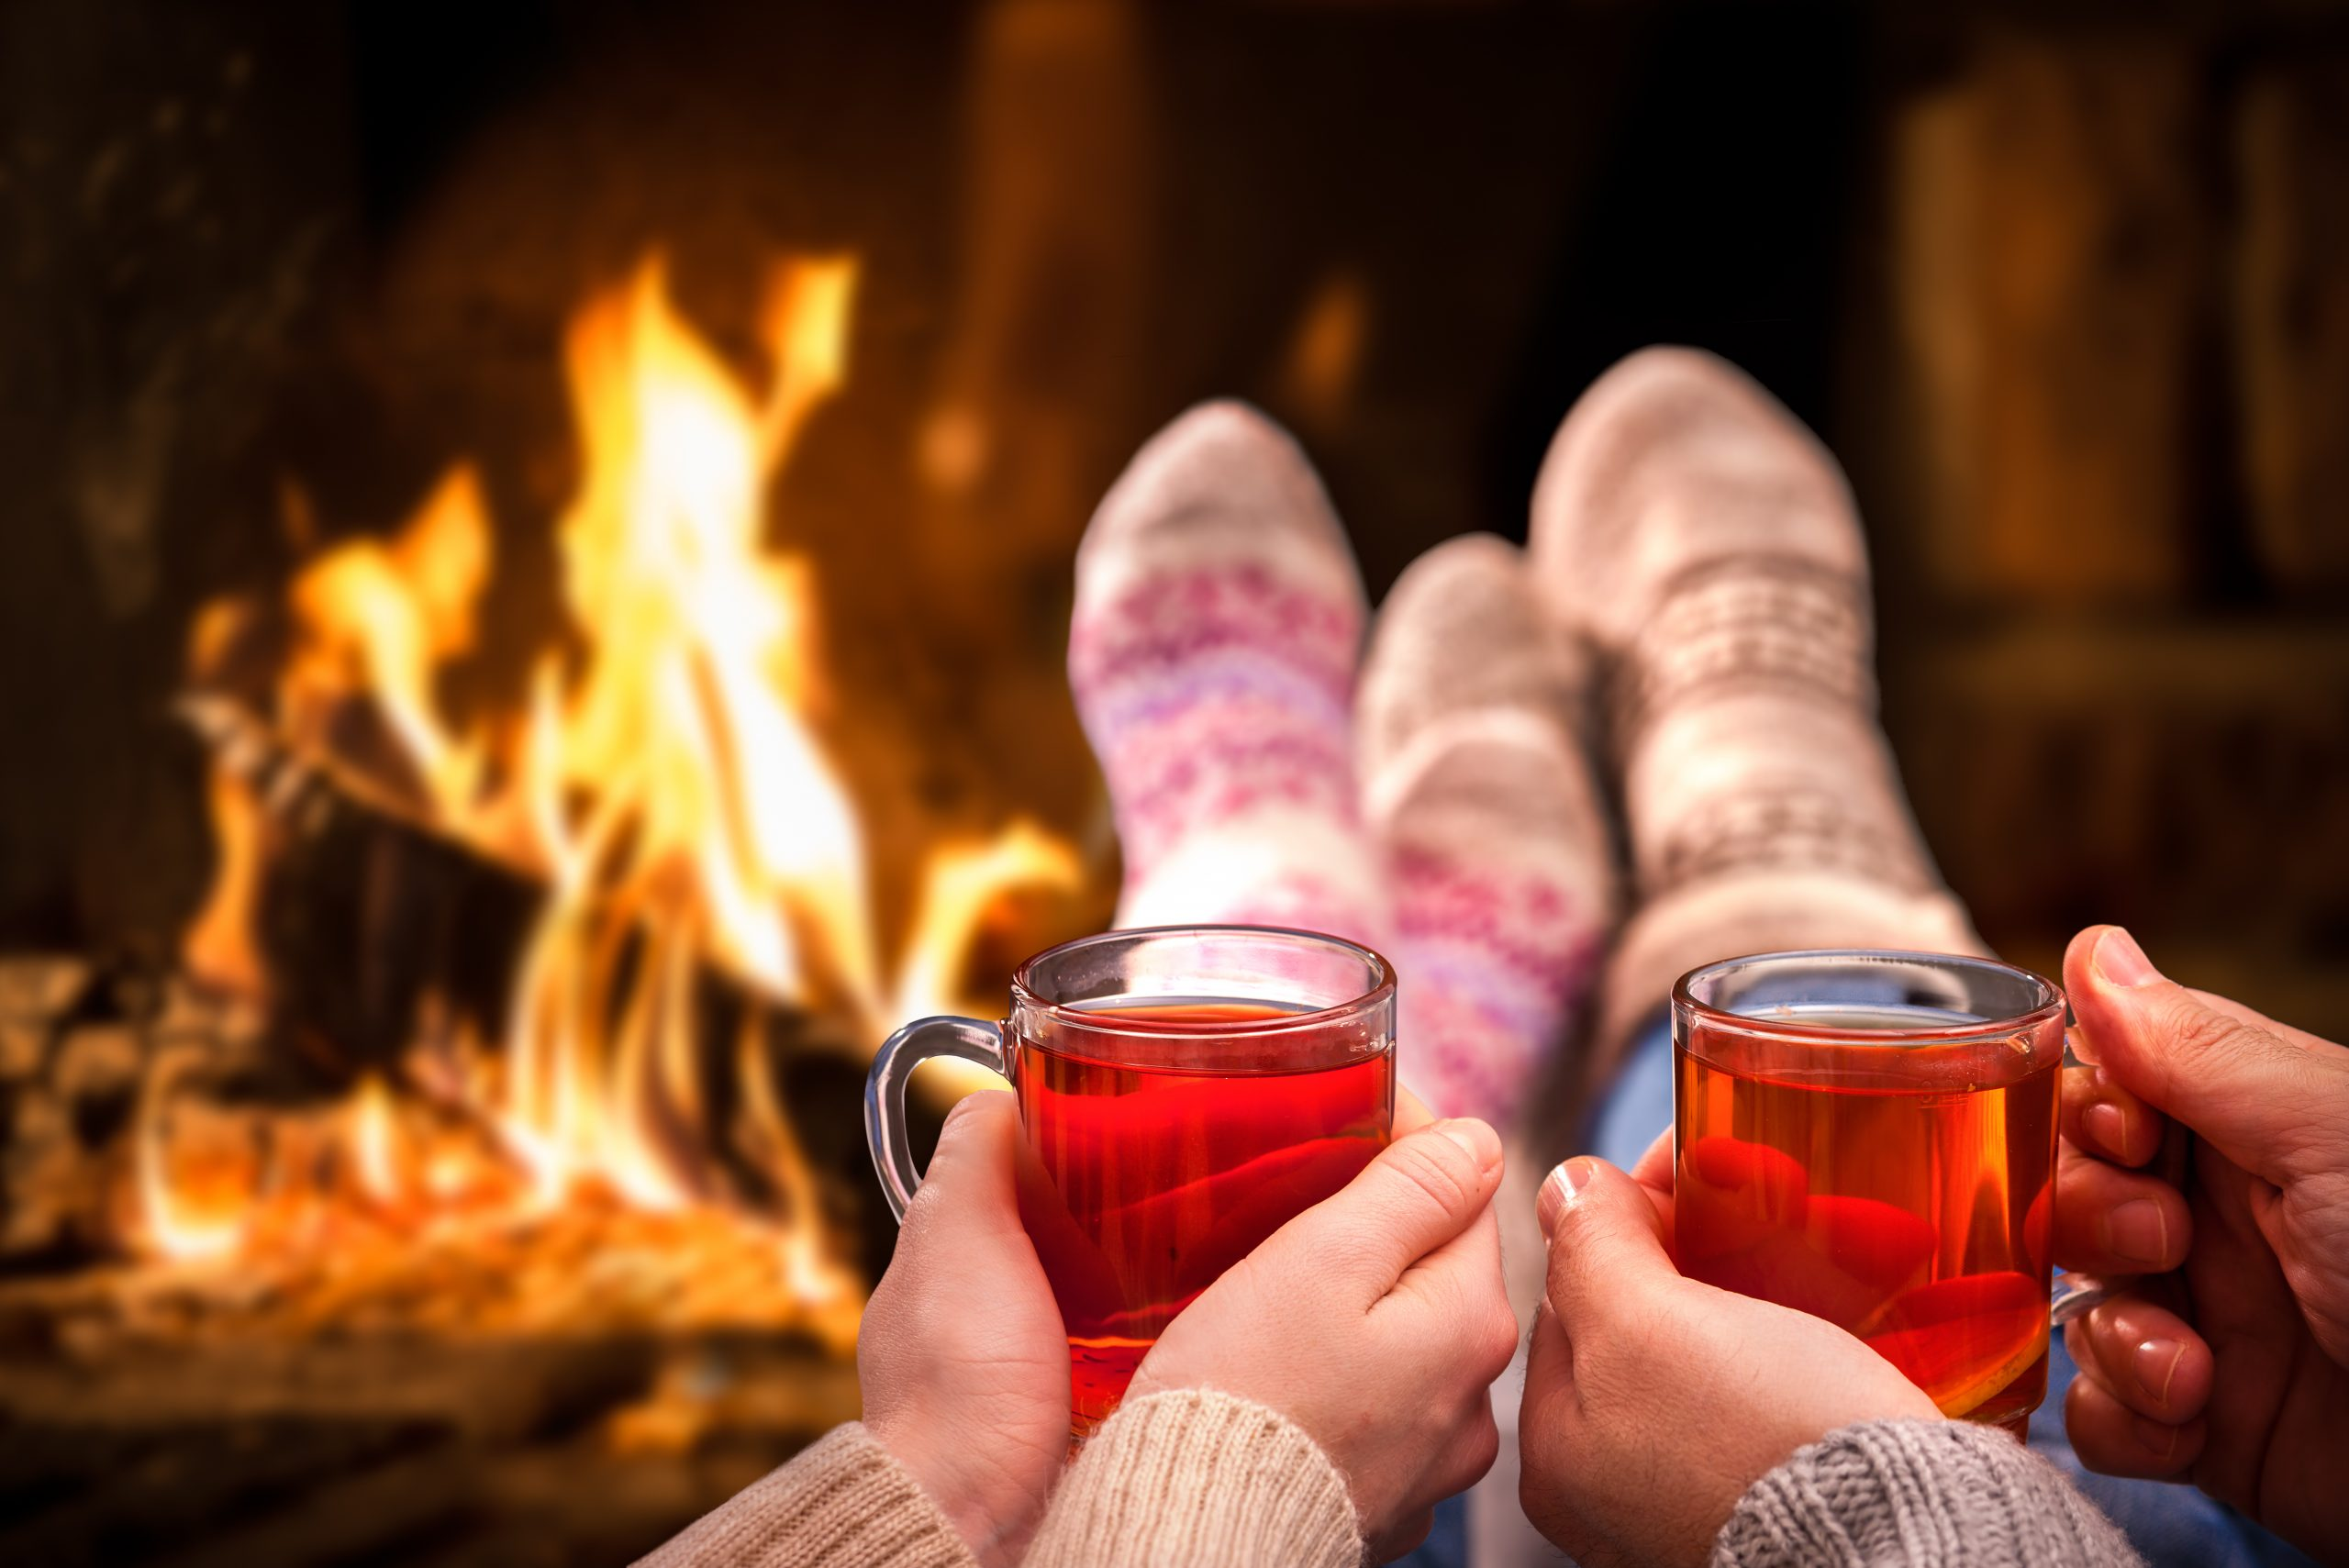 What Can I Do to Keep My Home Cozy While Still Cutting Costs on My Energy Bill?